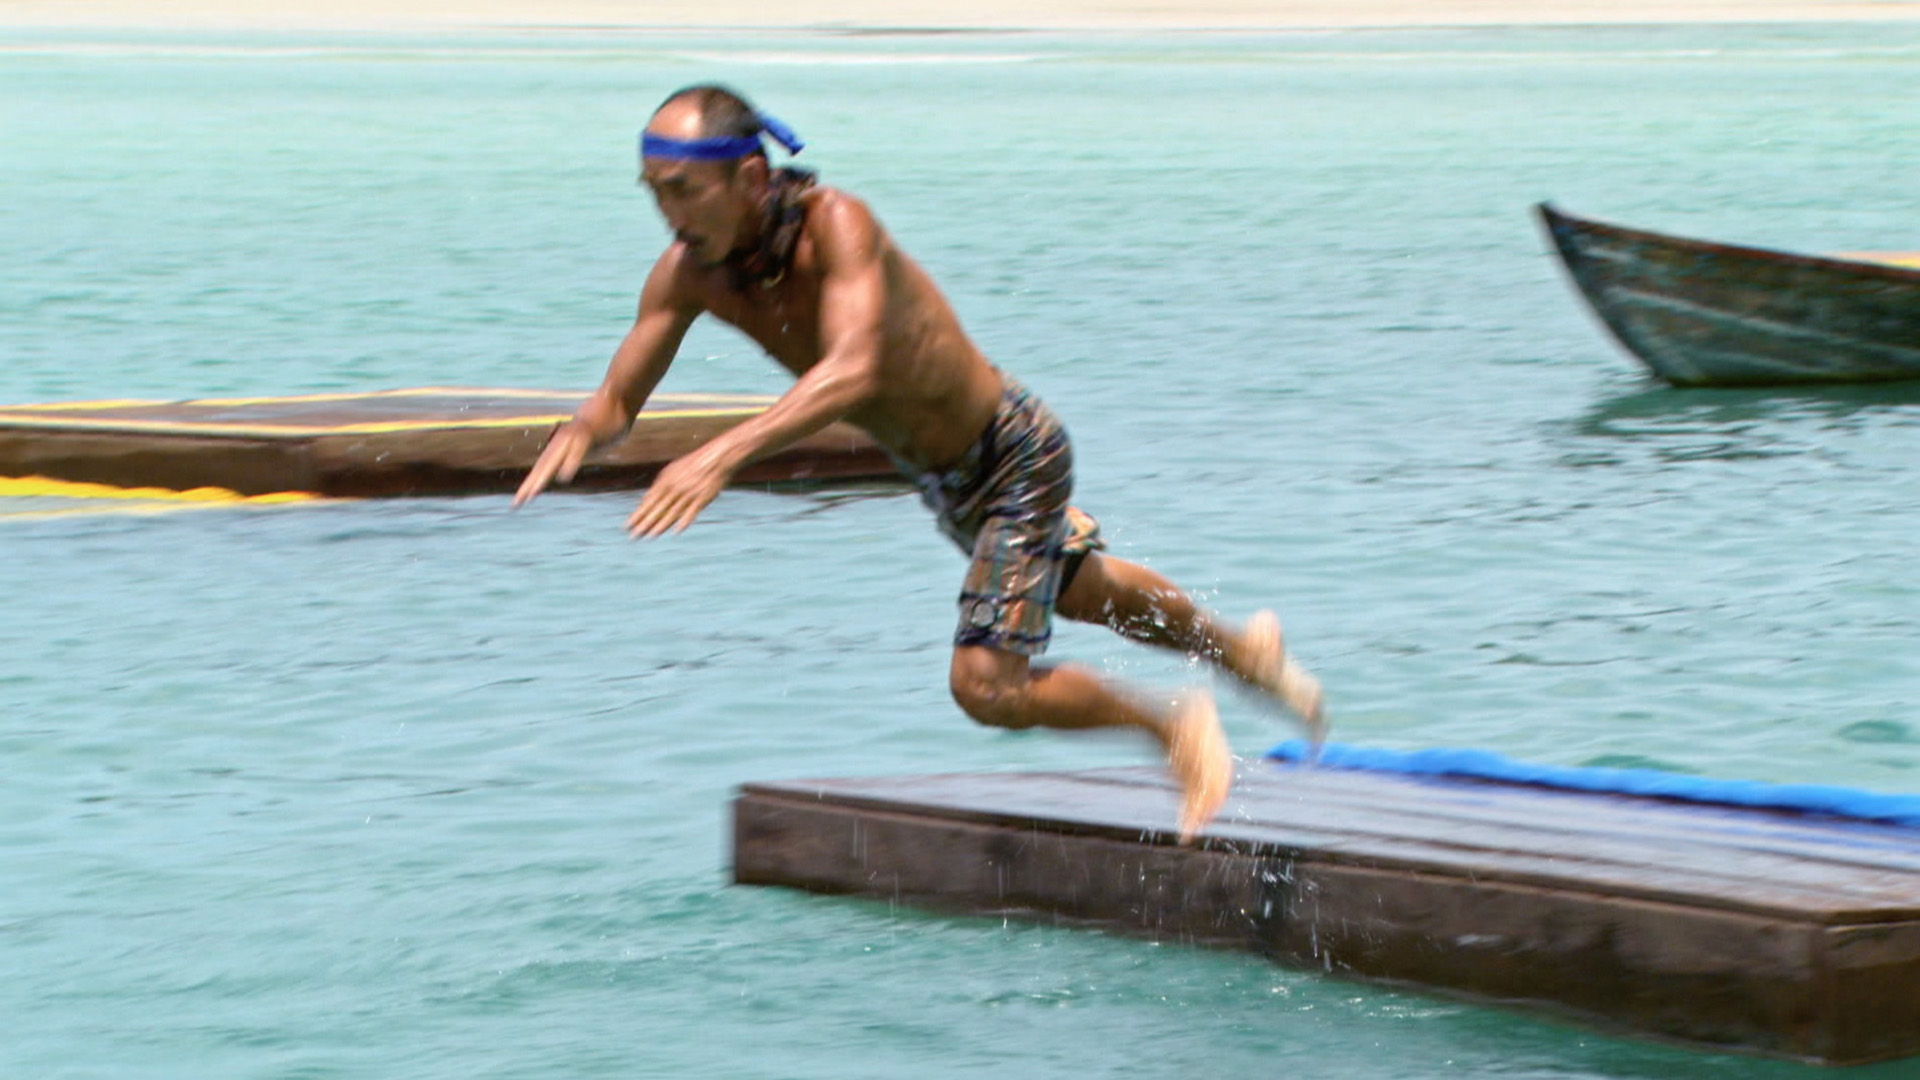 Tai dives right into the challenge.